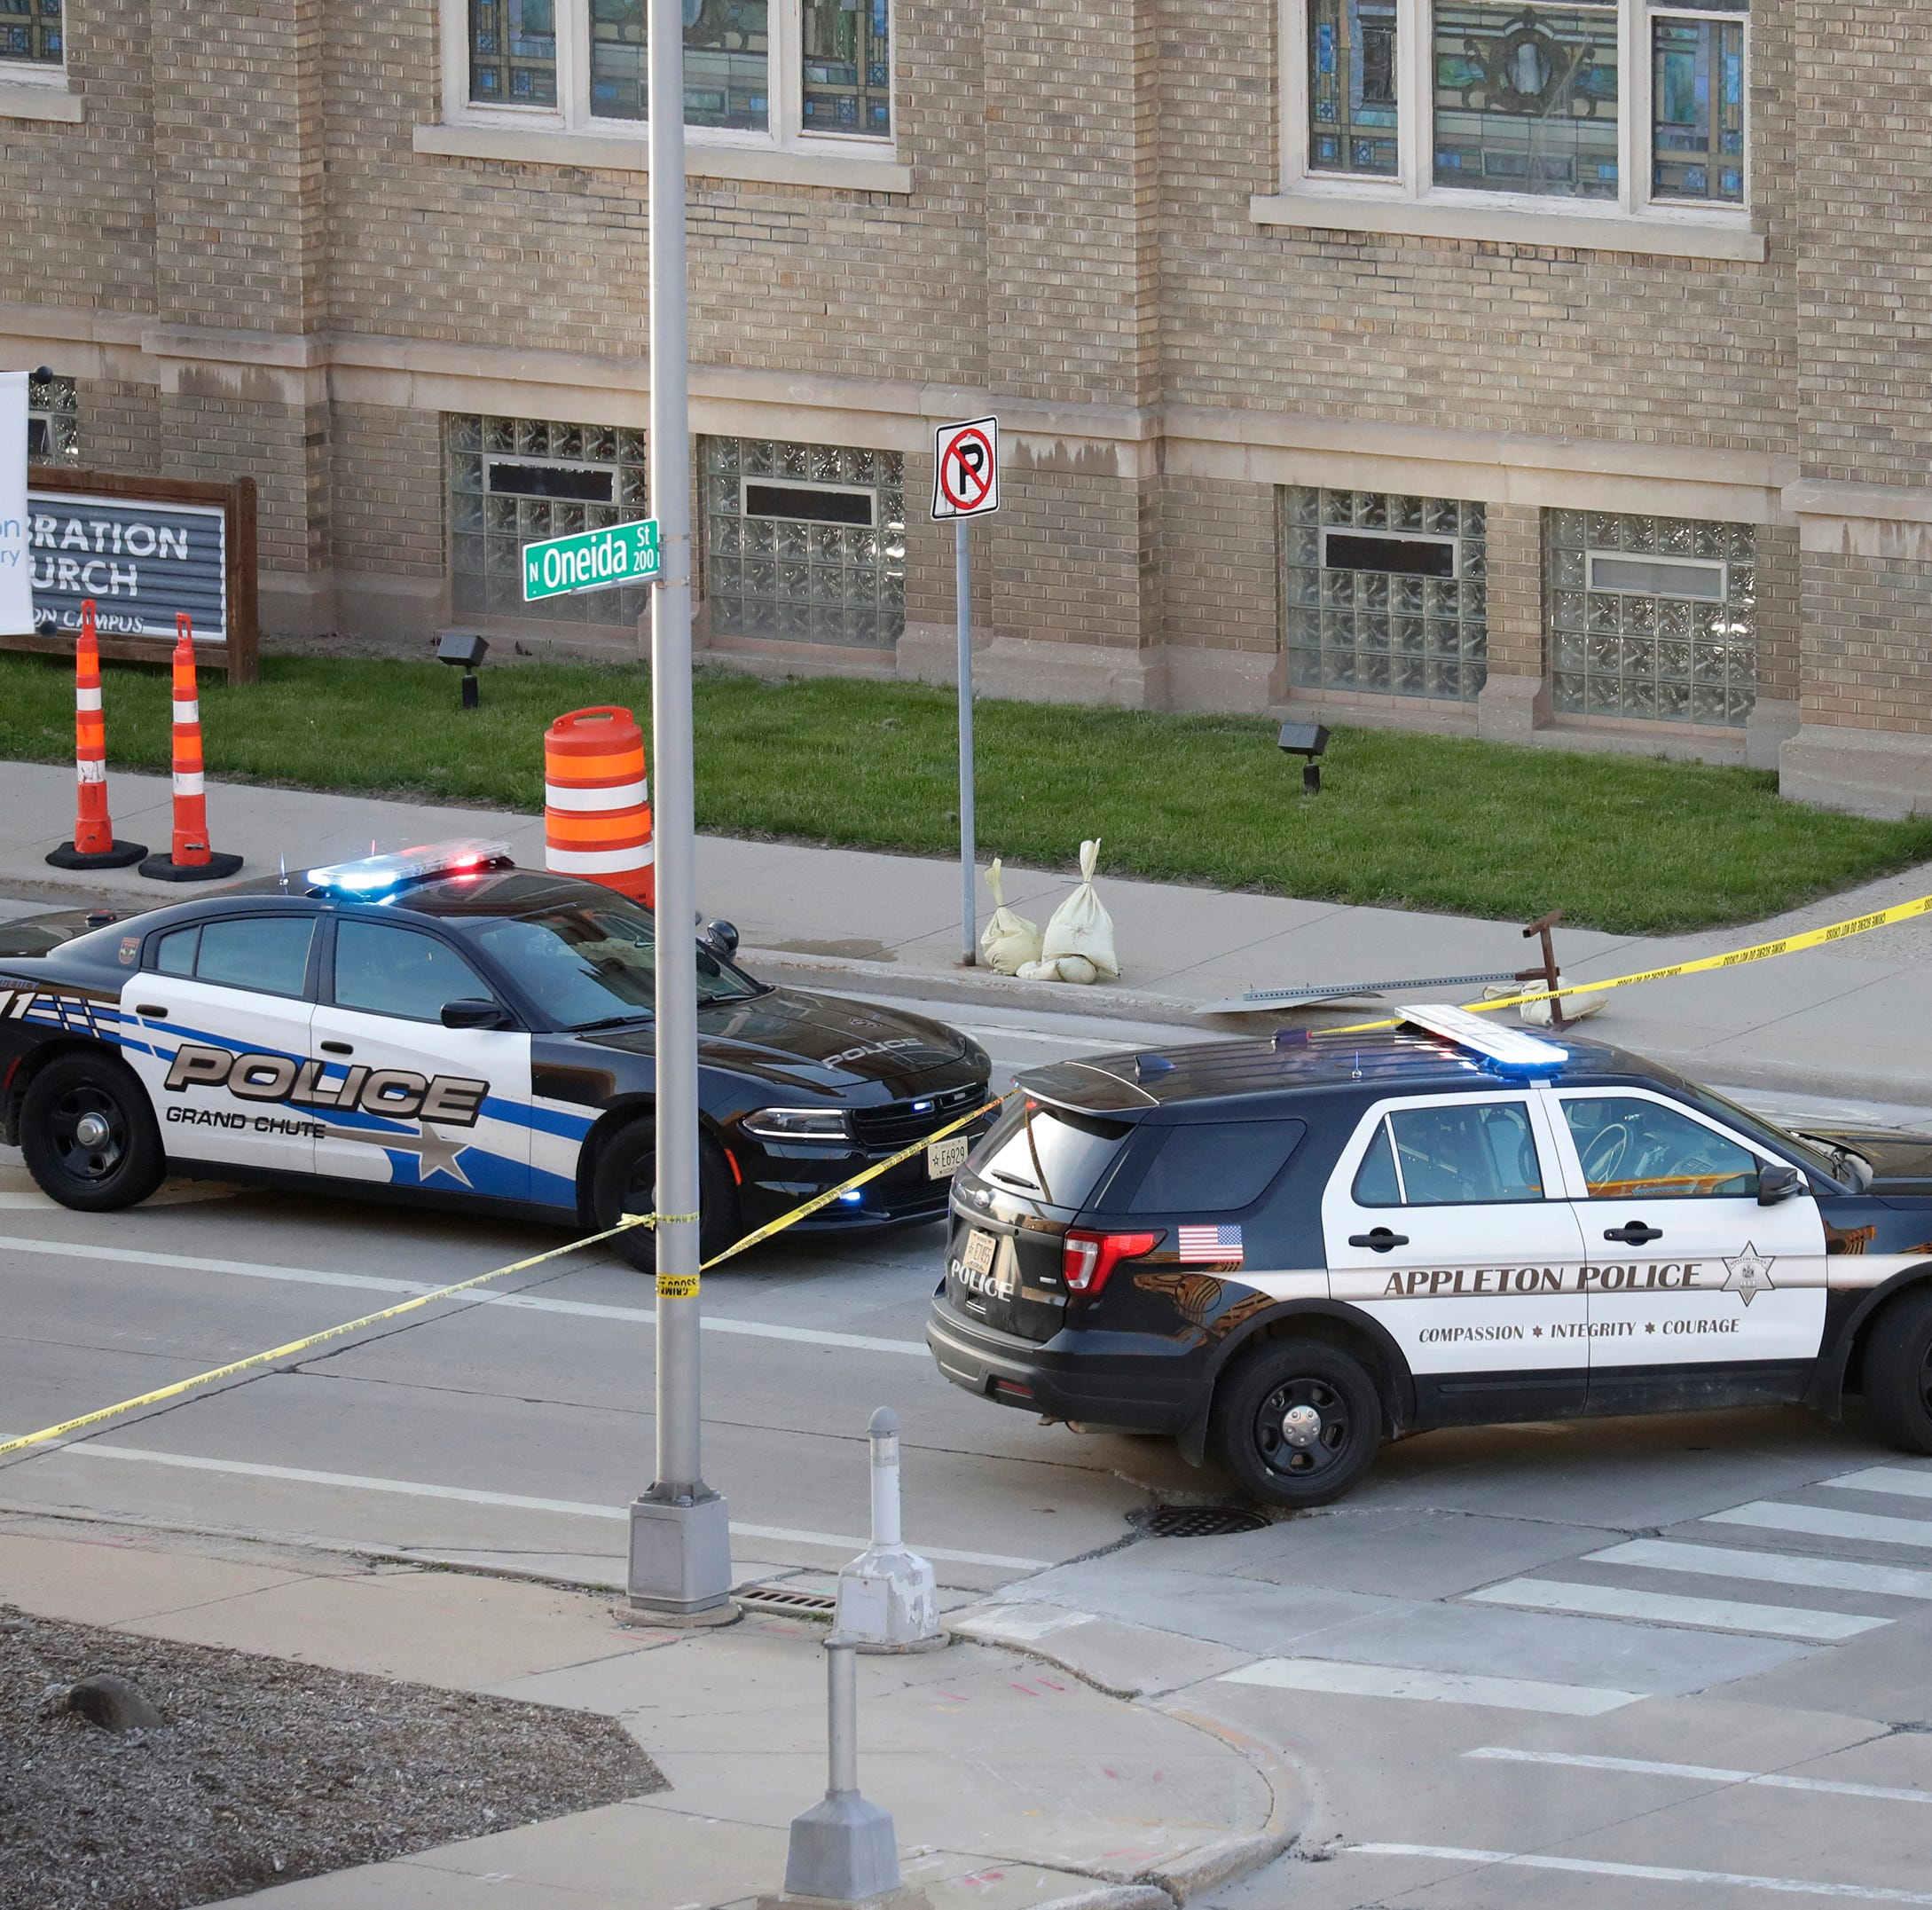 Appleton police offer no timeline to finish investigation of May 15 shooting but say there was 'valor'